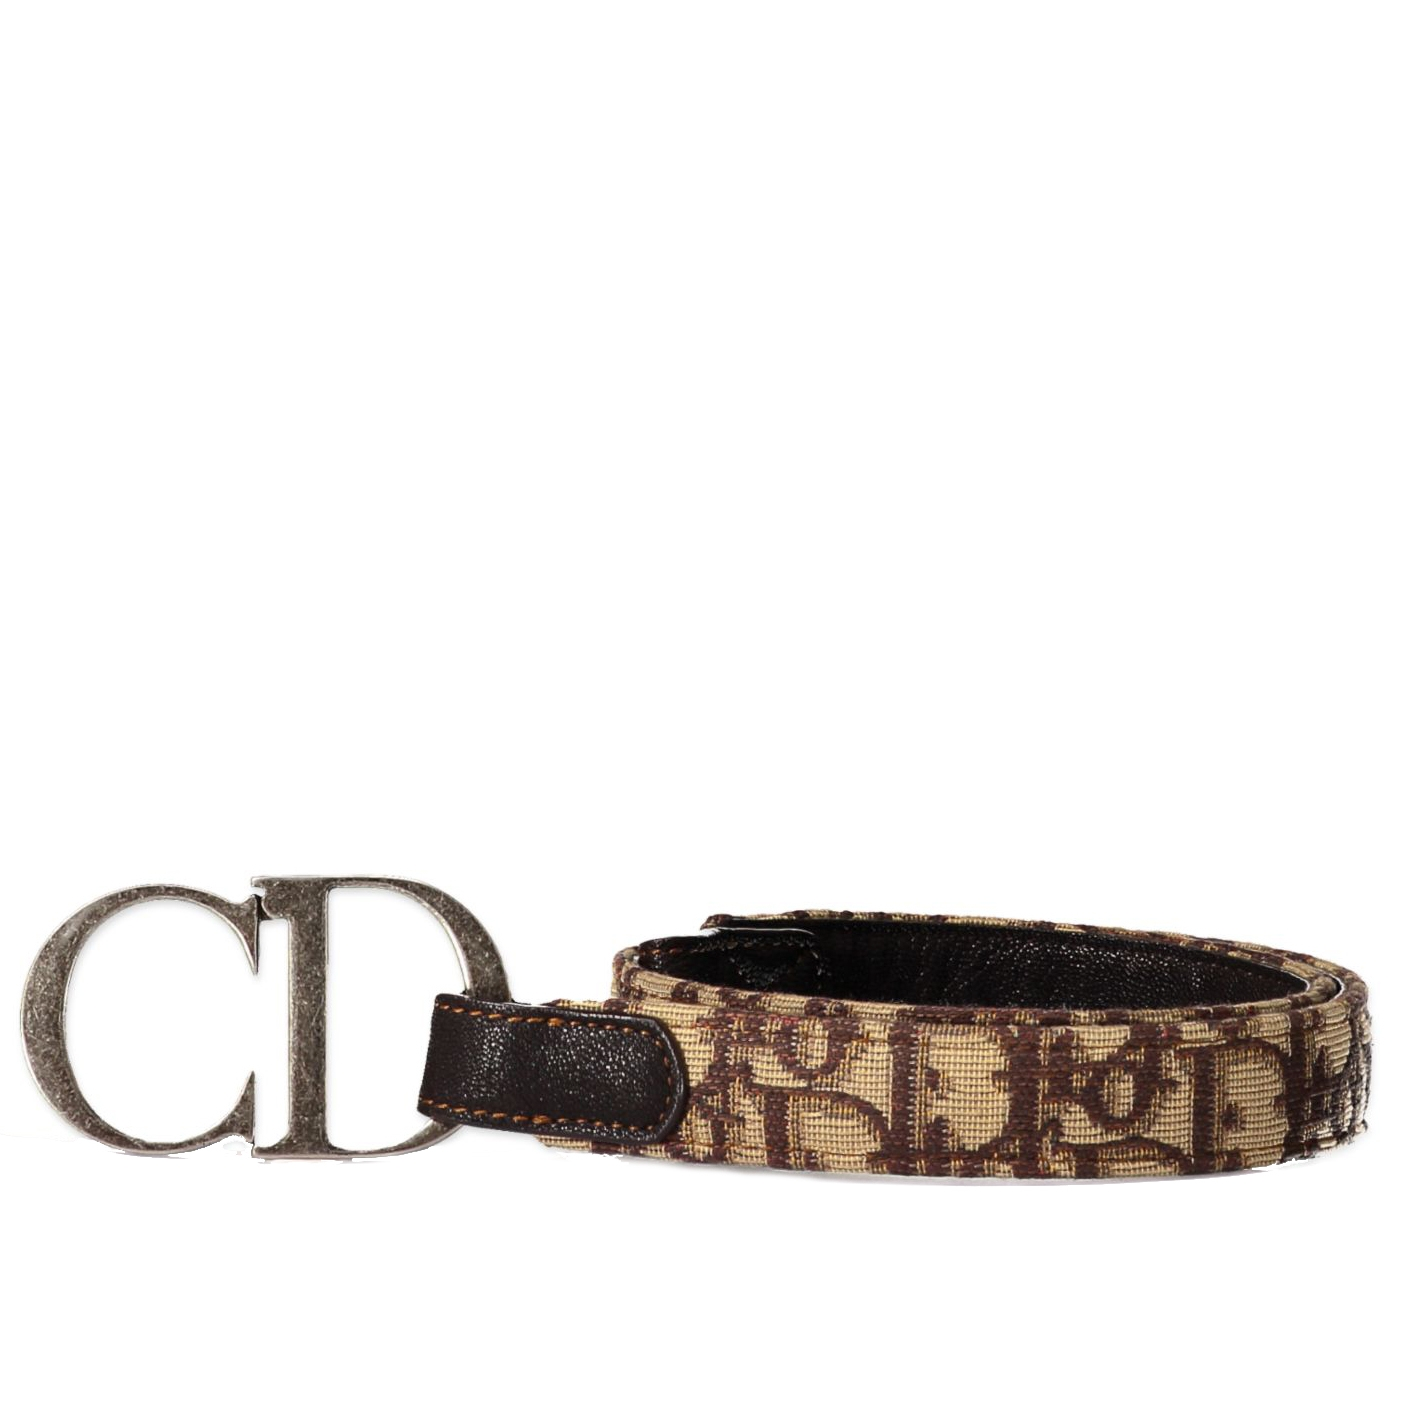 Christian Dior Brown Diorissimo CD Belt